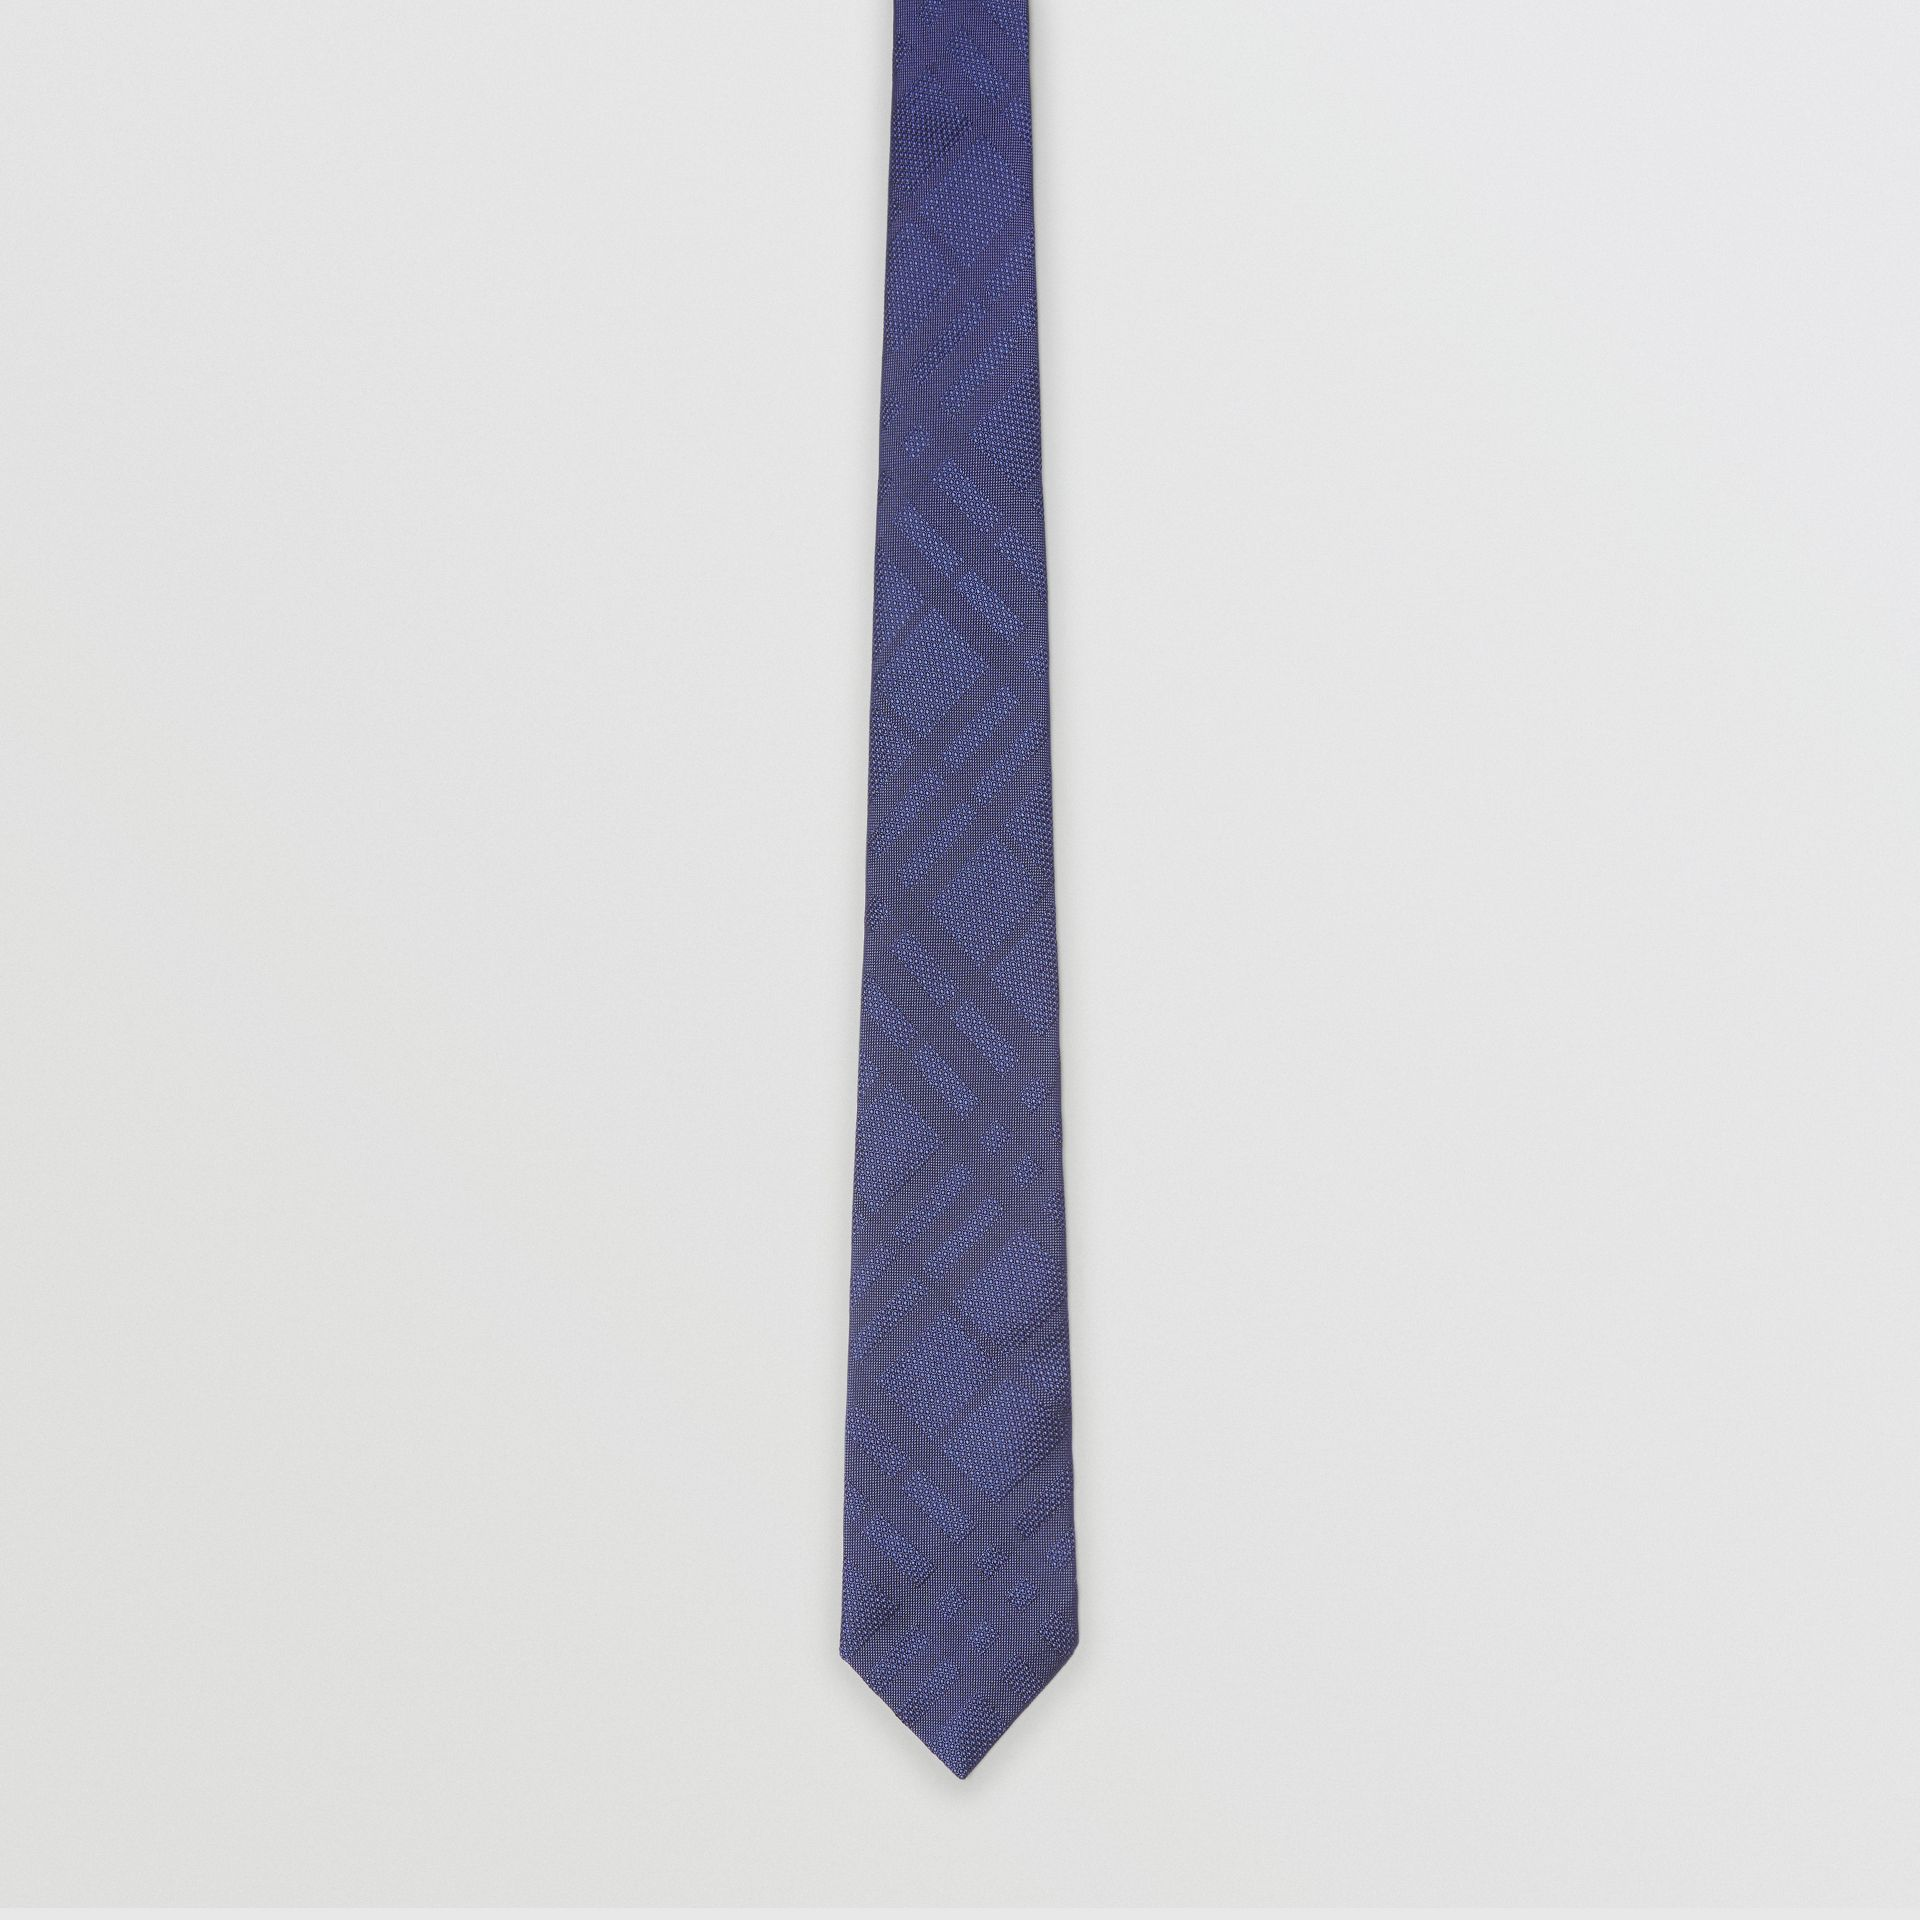 Classic Cut Check Silk Jacquard Tie in Blue - Men | Burberry United Kingdom - gallery image 3